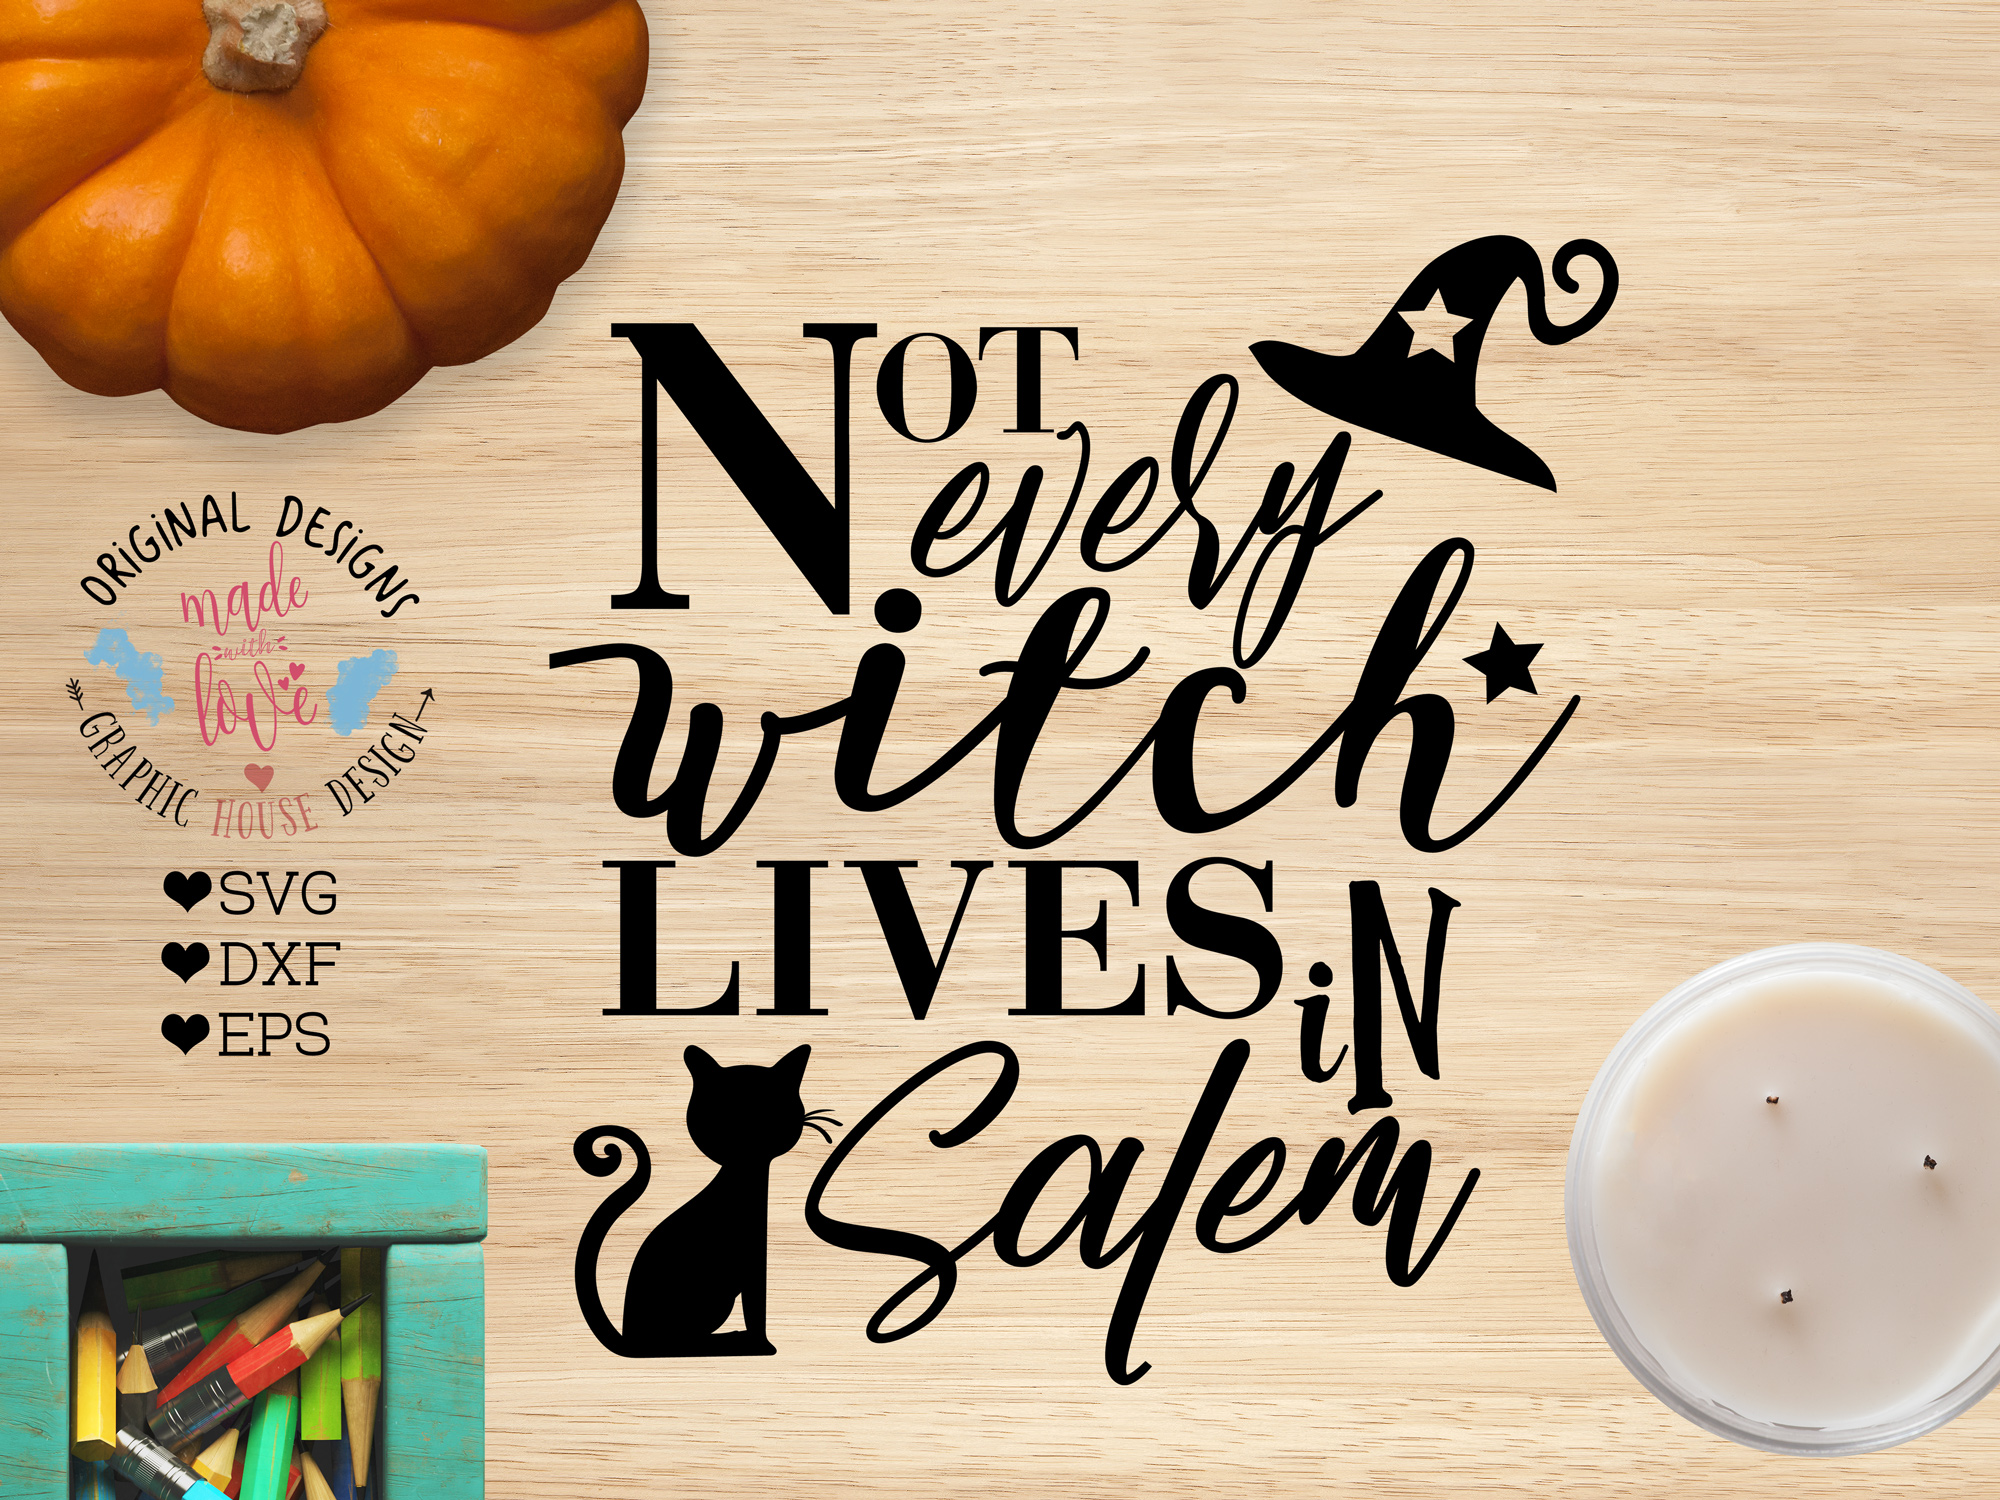 Download Free Not Every Witch Lives In Salem Graphic By Graphichousedesign for Cricut Explore, Silhouette and other cutting machines.